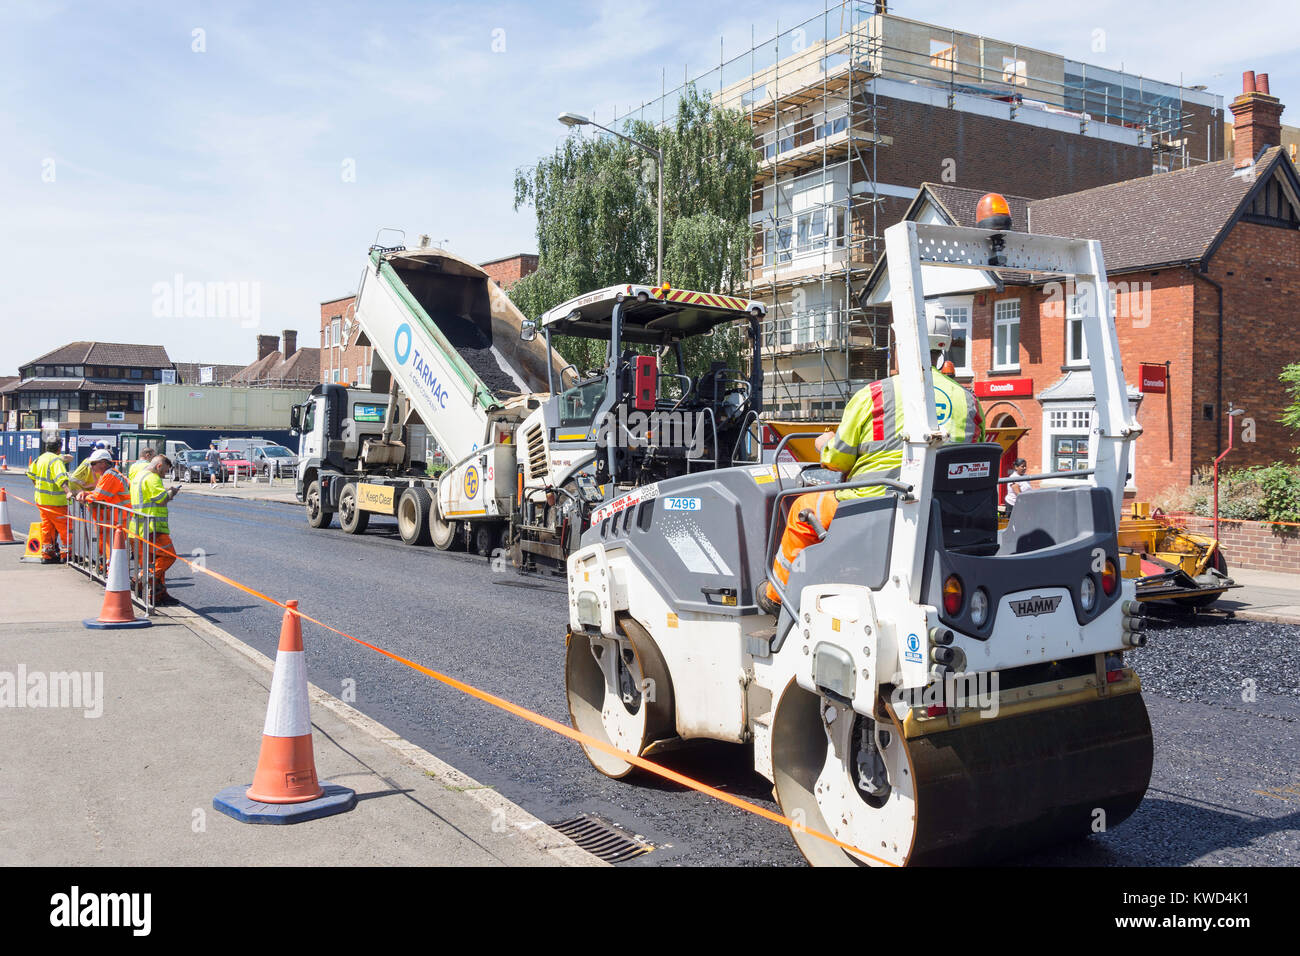 Road resurfacing machinery at work, Queensway, Bletchley, Milton Keynes, Buckinghamshire, England, United Kingdom - Stock Image